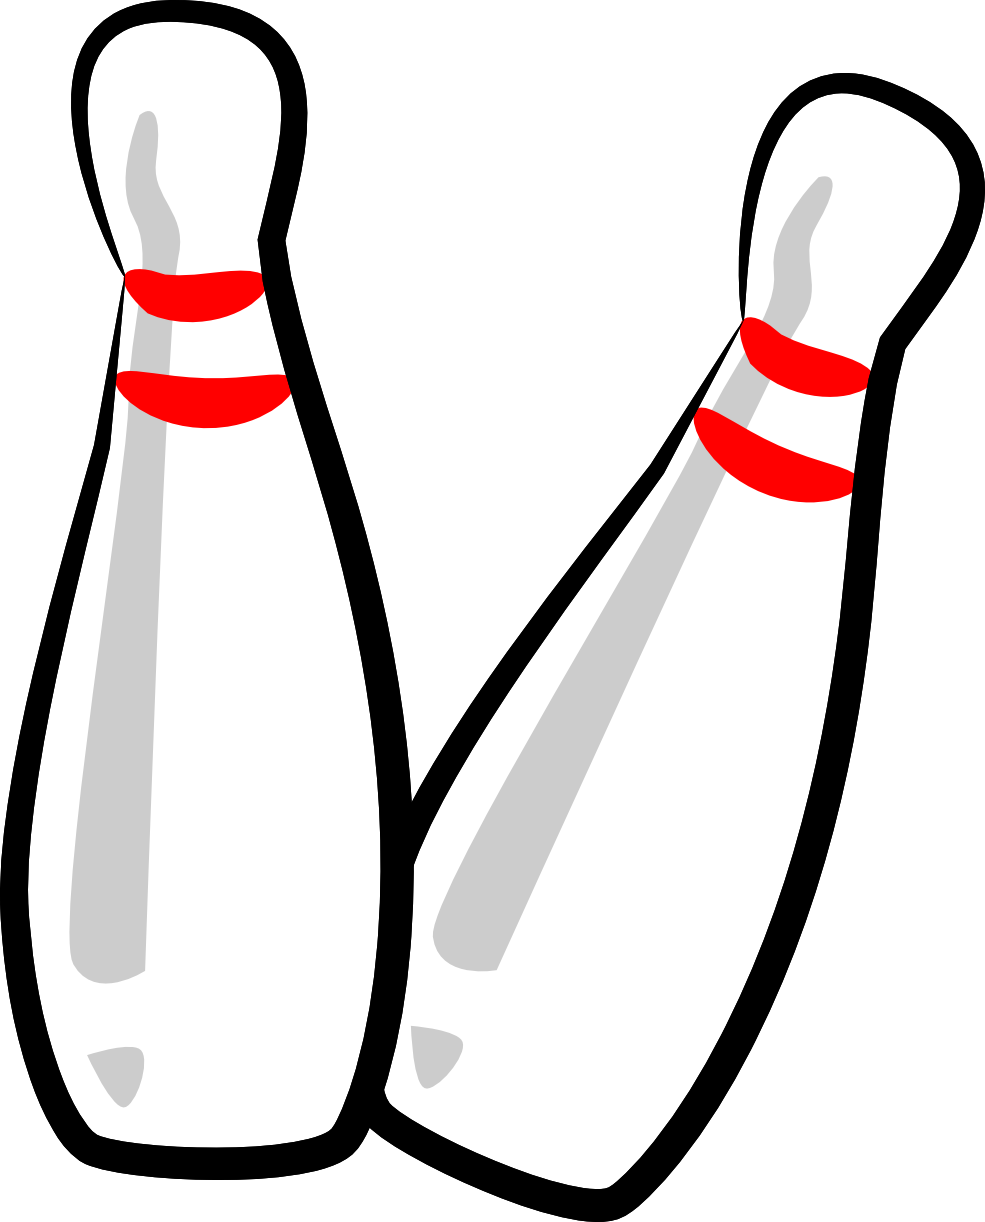 Bowling Pin Png - ClipArt Best